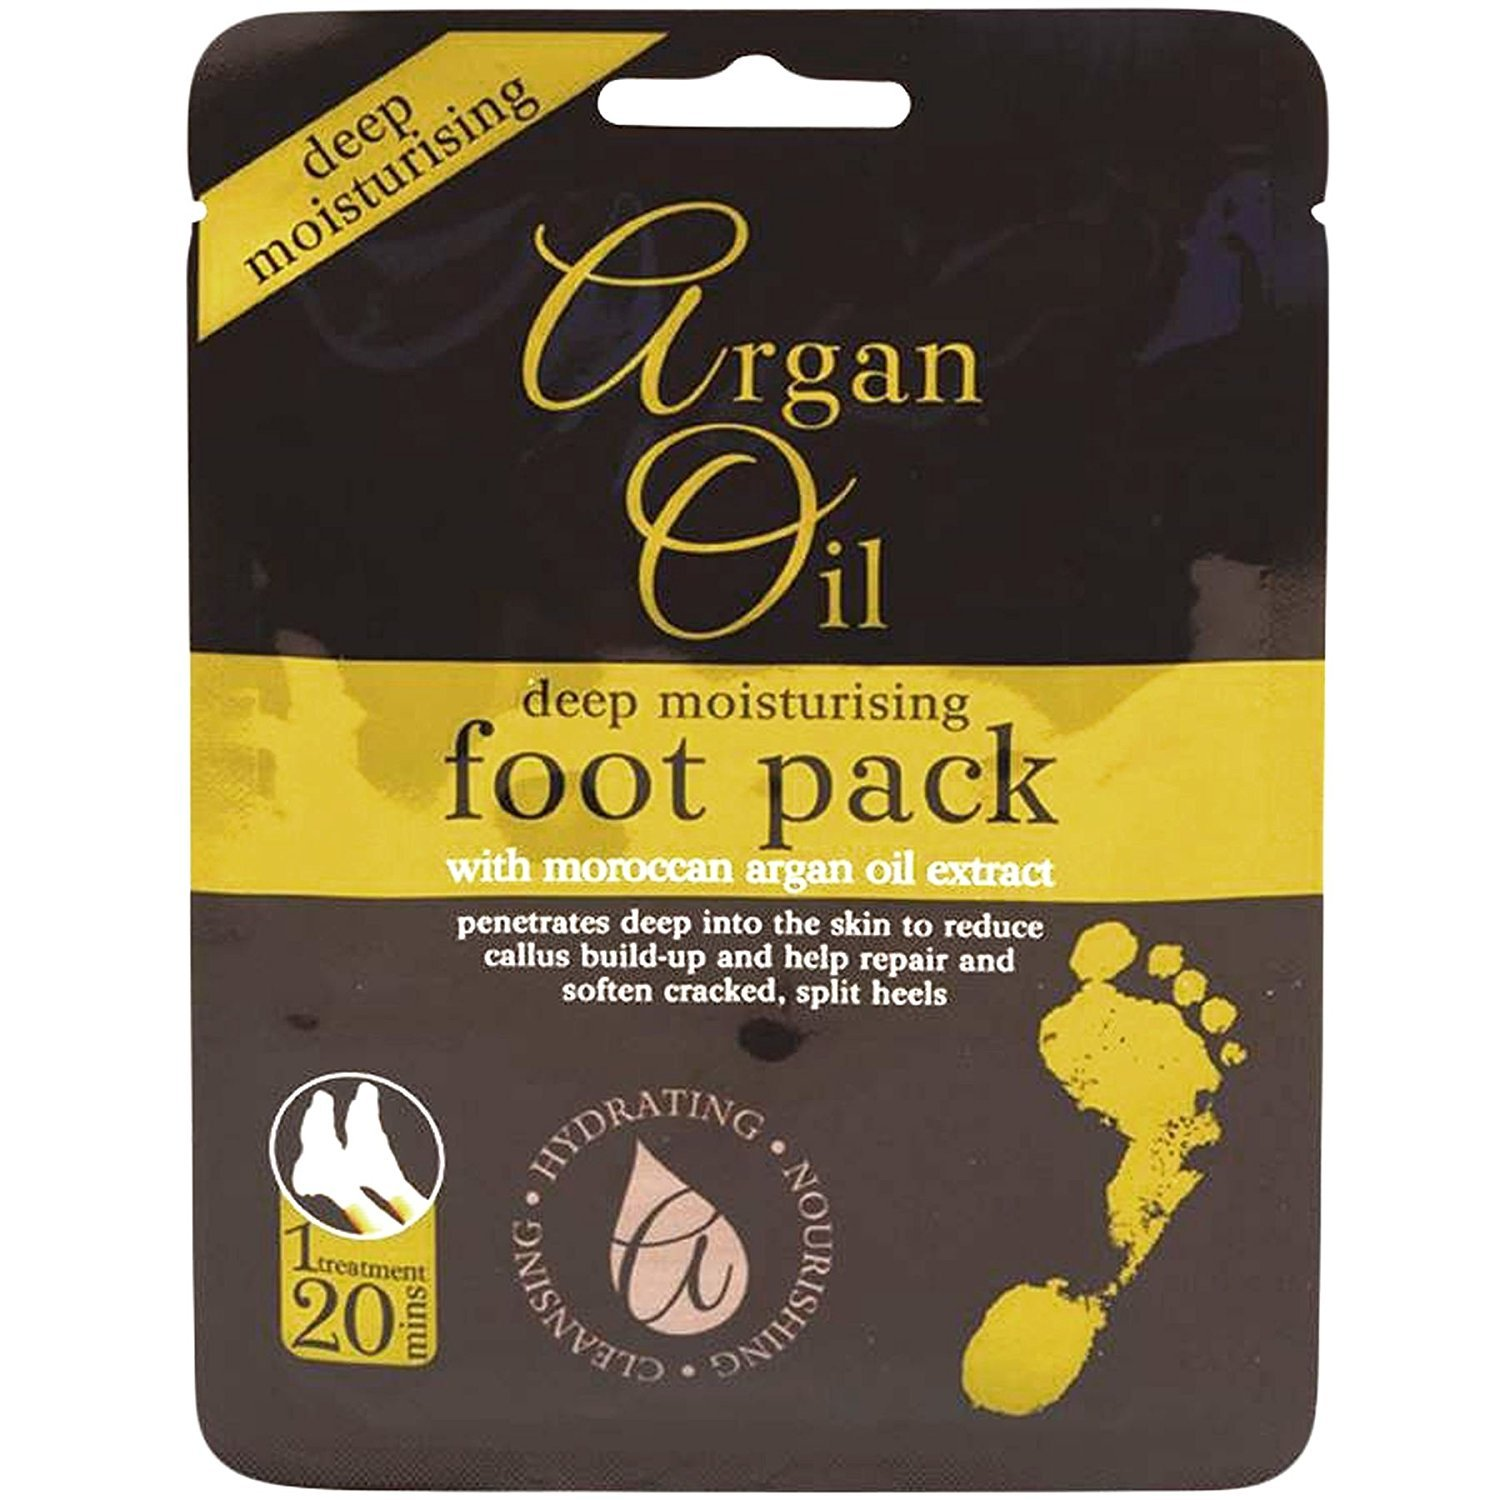 Multi Pack Deep Moisturising Foot Pack with Morrocan Argan Oil Extract - 12 Packs